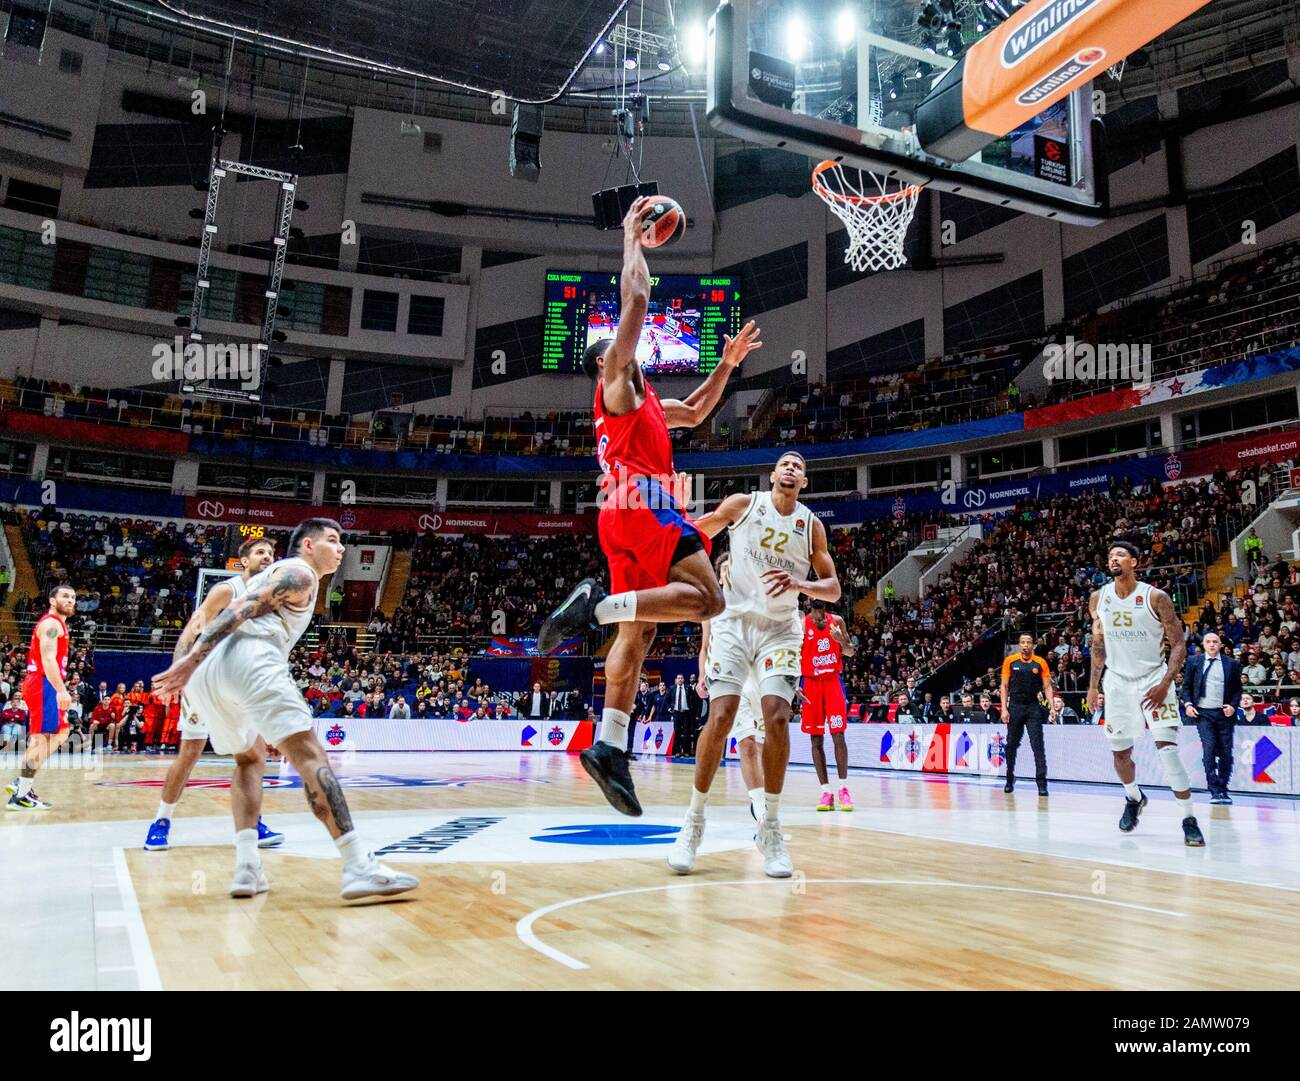 Moskau, Russland. Januar 2020. #42 Kyle Hines von CSKA Moskau im Spiel gegen Real Madrid während der regulären Saison 2019/2020 Turkish Airlines Euroleague Runde 19 in der Megasport Arena.(Endstand: CSKA Moskau 60 - 55 Real Madrid) Credit: Sopa Images Limited/Alamy Live News Stockfoto